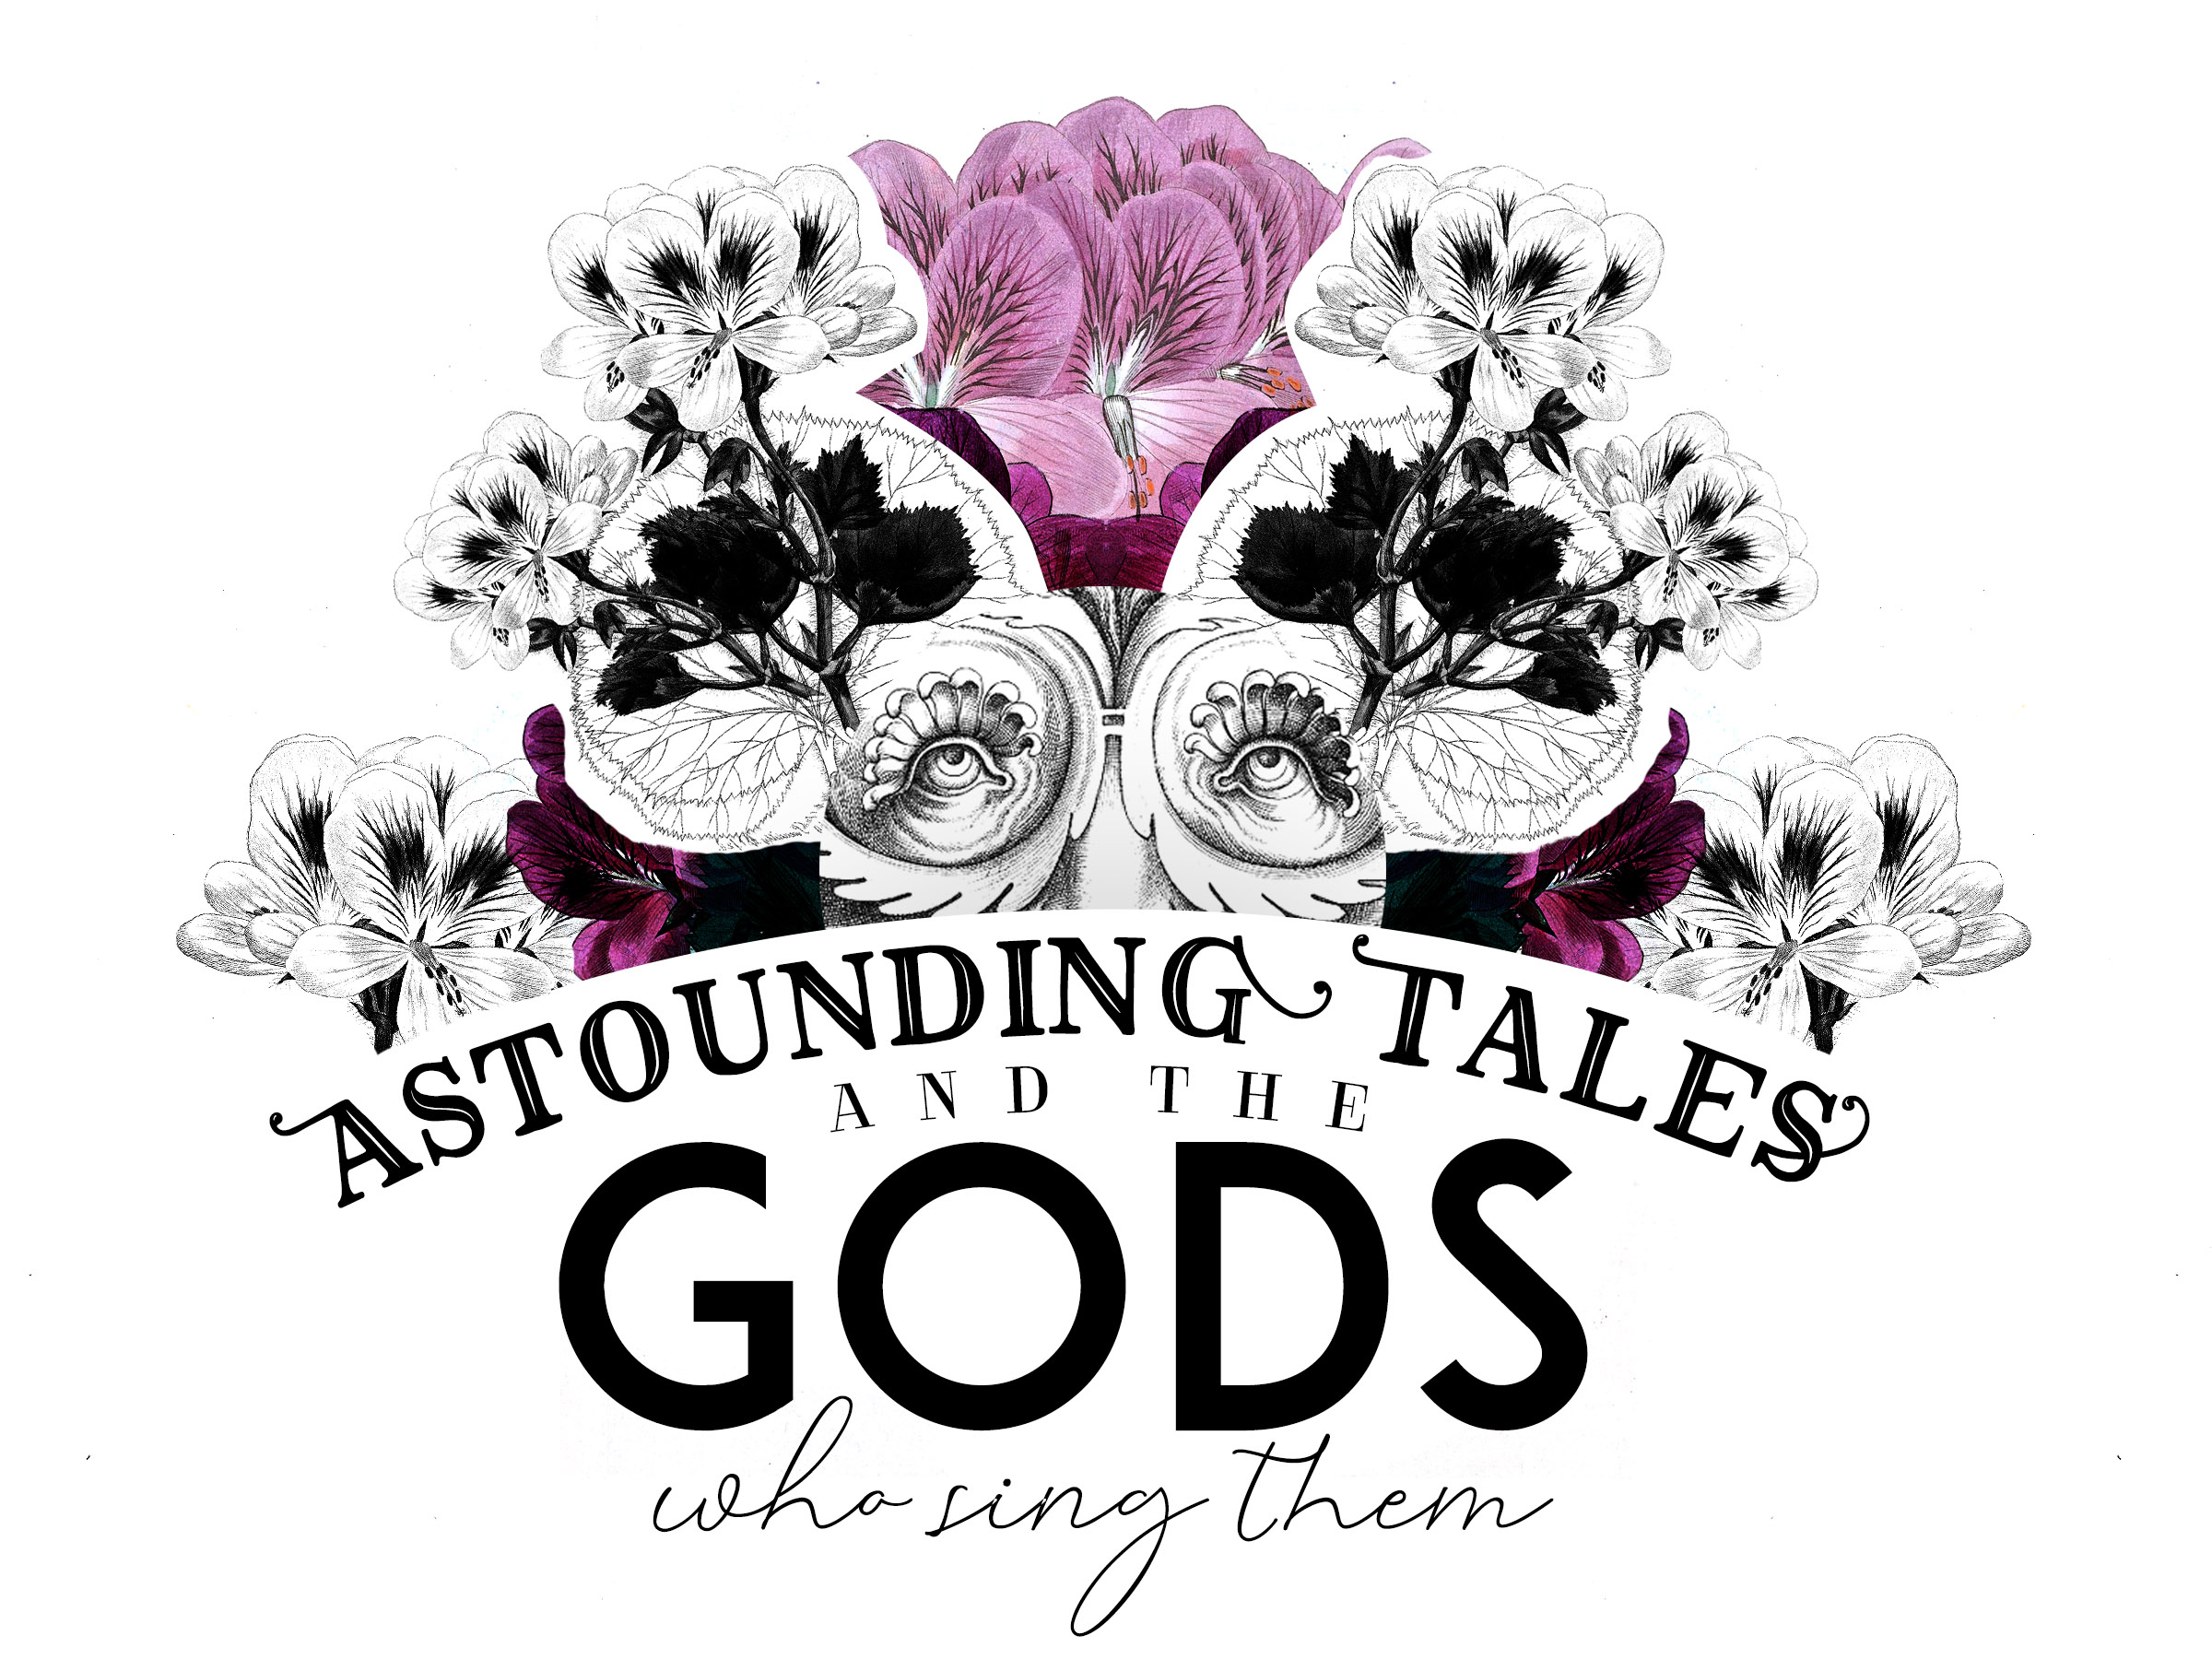 Astounding Tales and the Gods who Sing Them